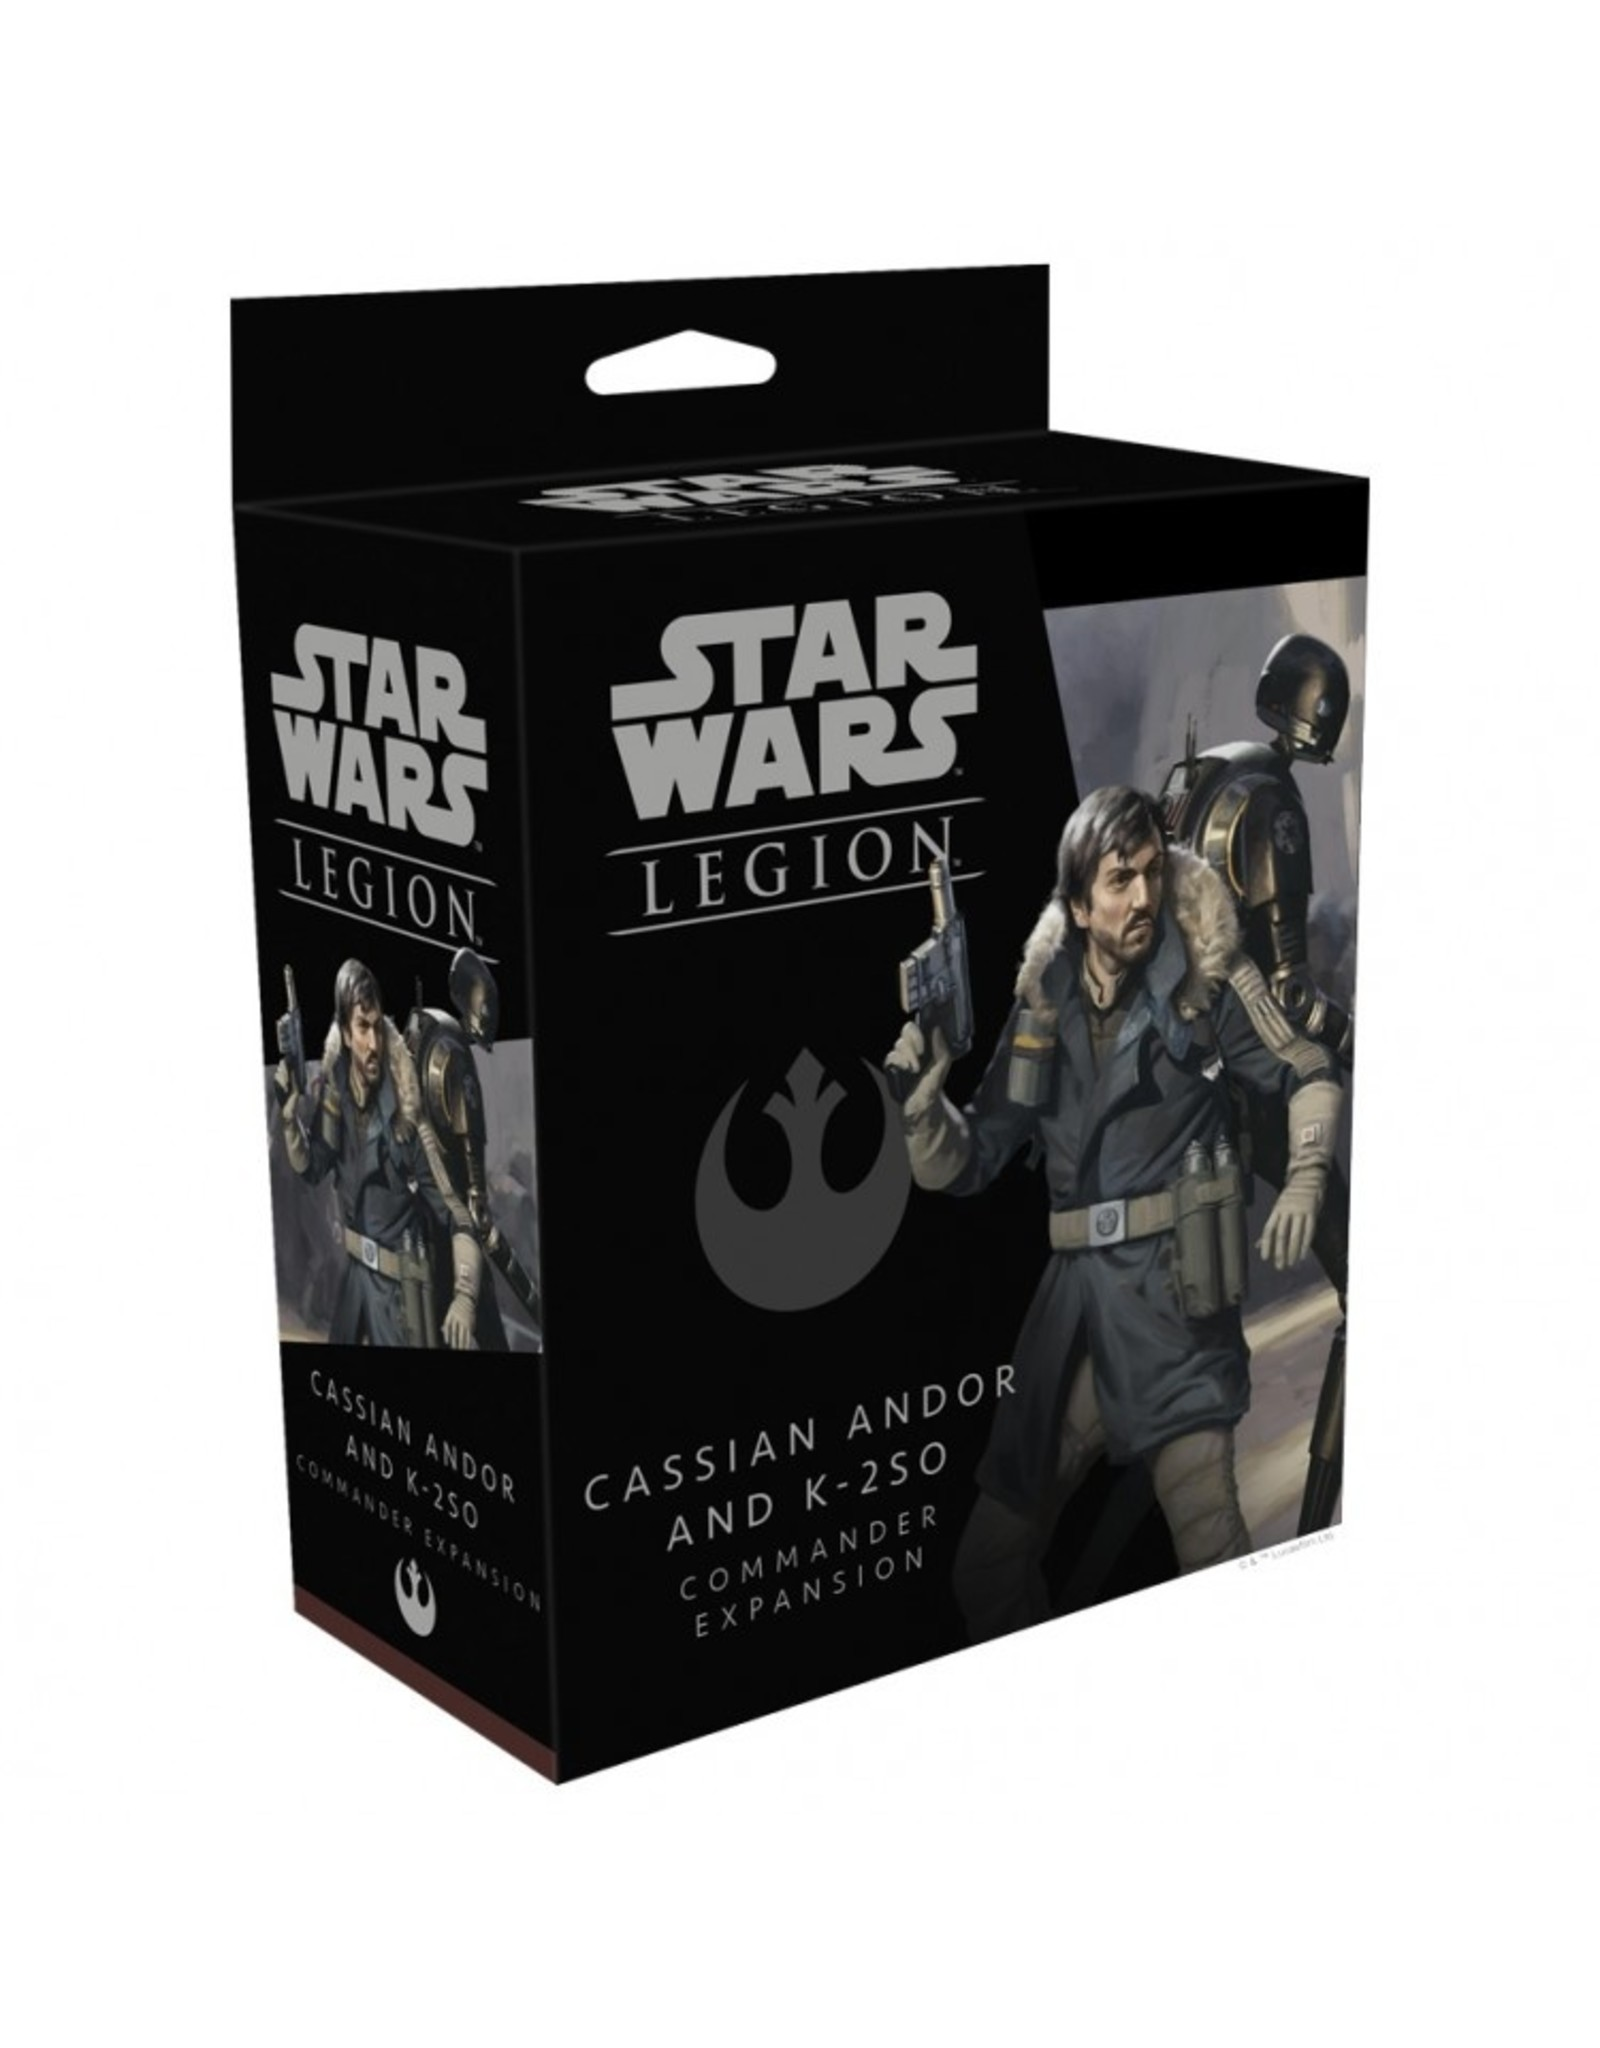 Atomic Mass Games Star Wars Legion: Cassian Andor and K-2SO